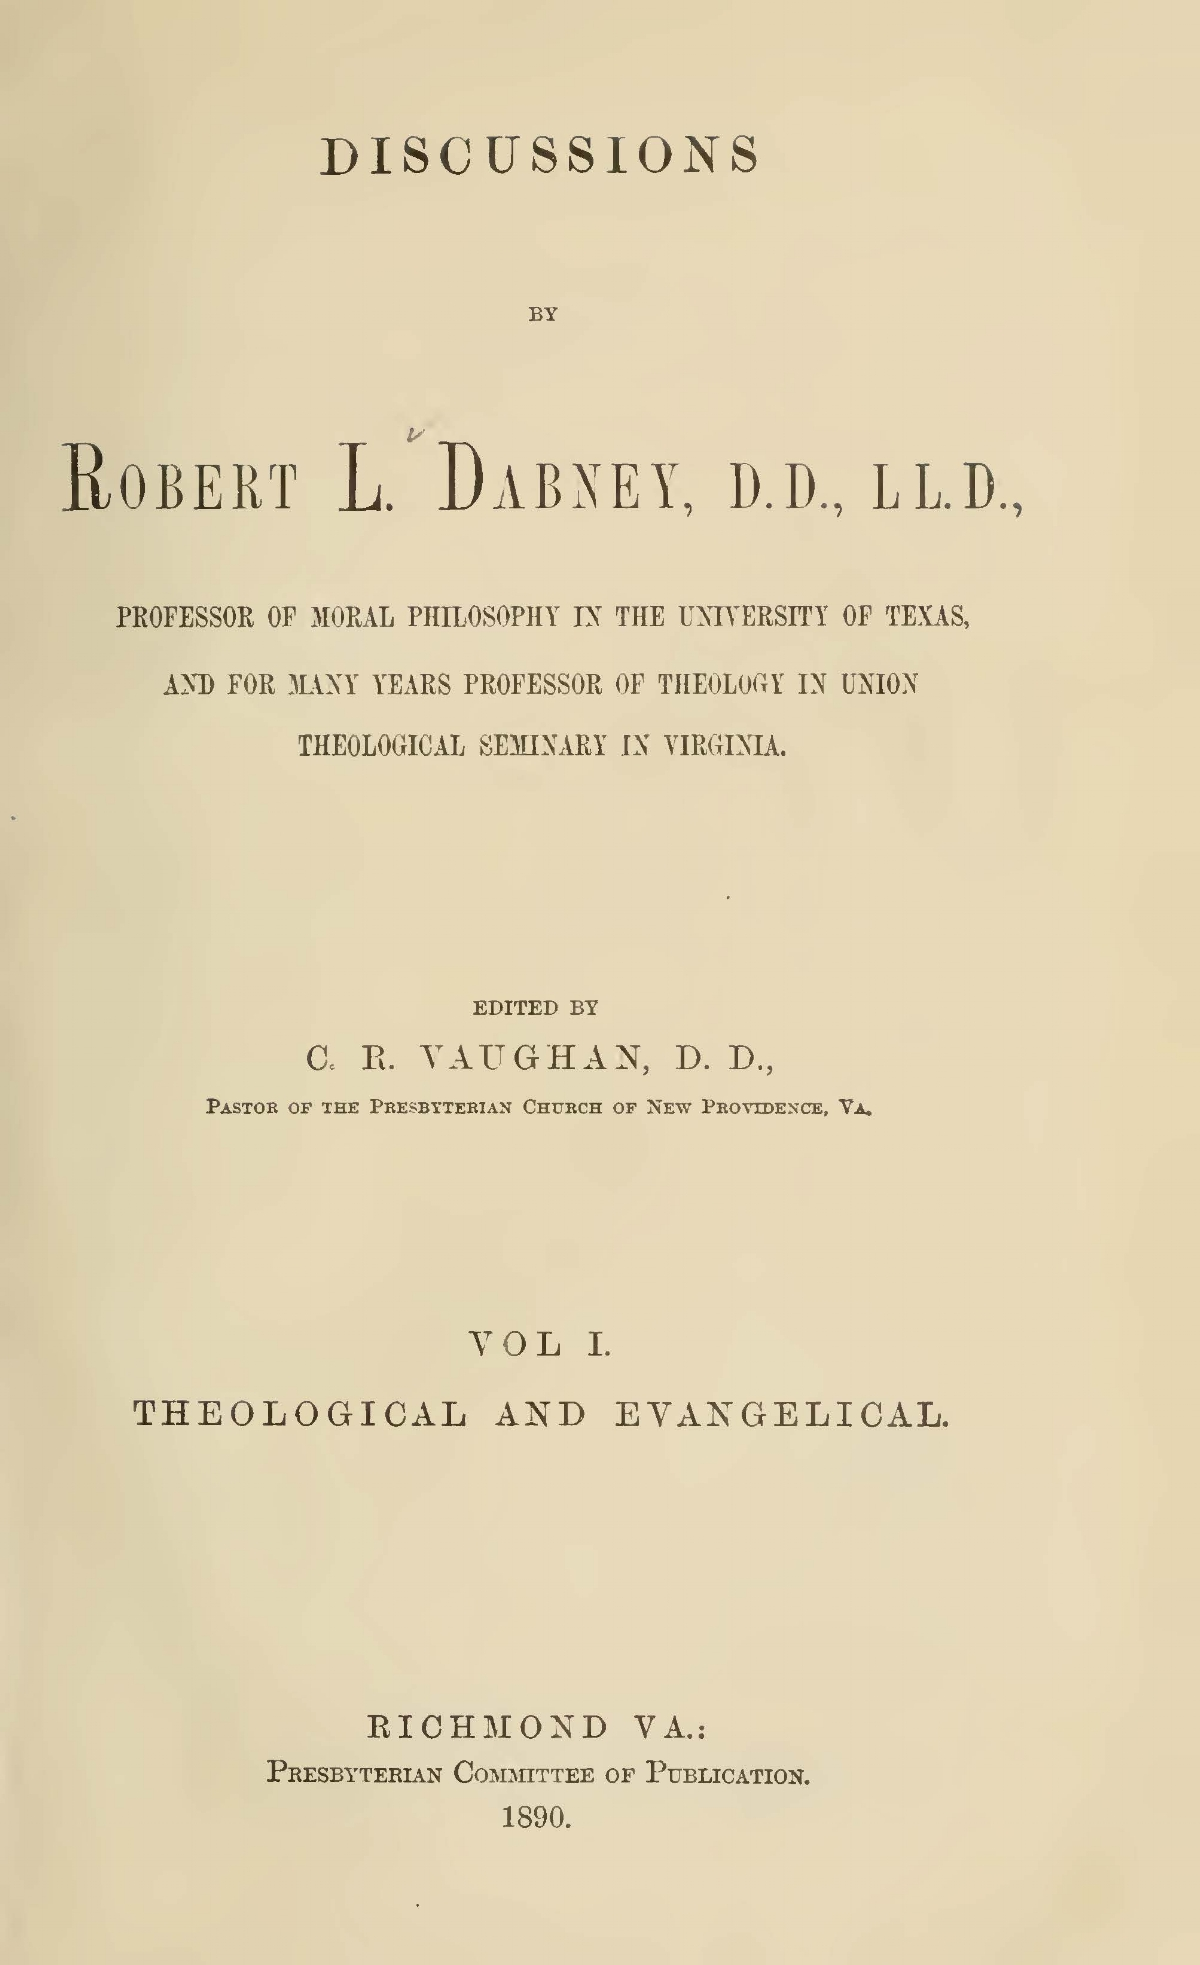 Dabney, Robert Lewis, Discussions Vol. 1 Title Page.jpg